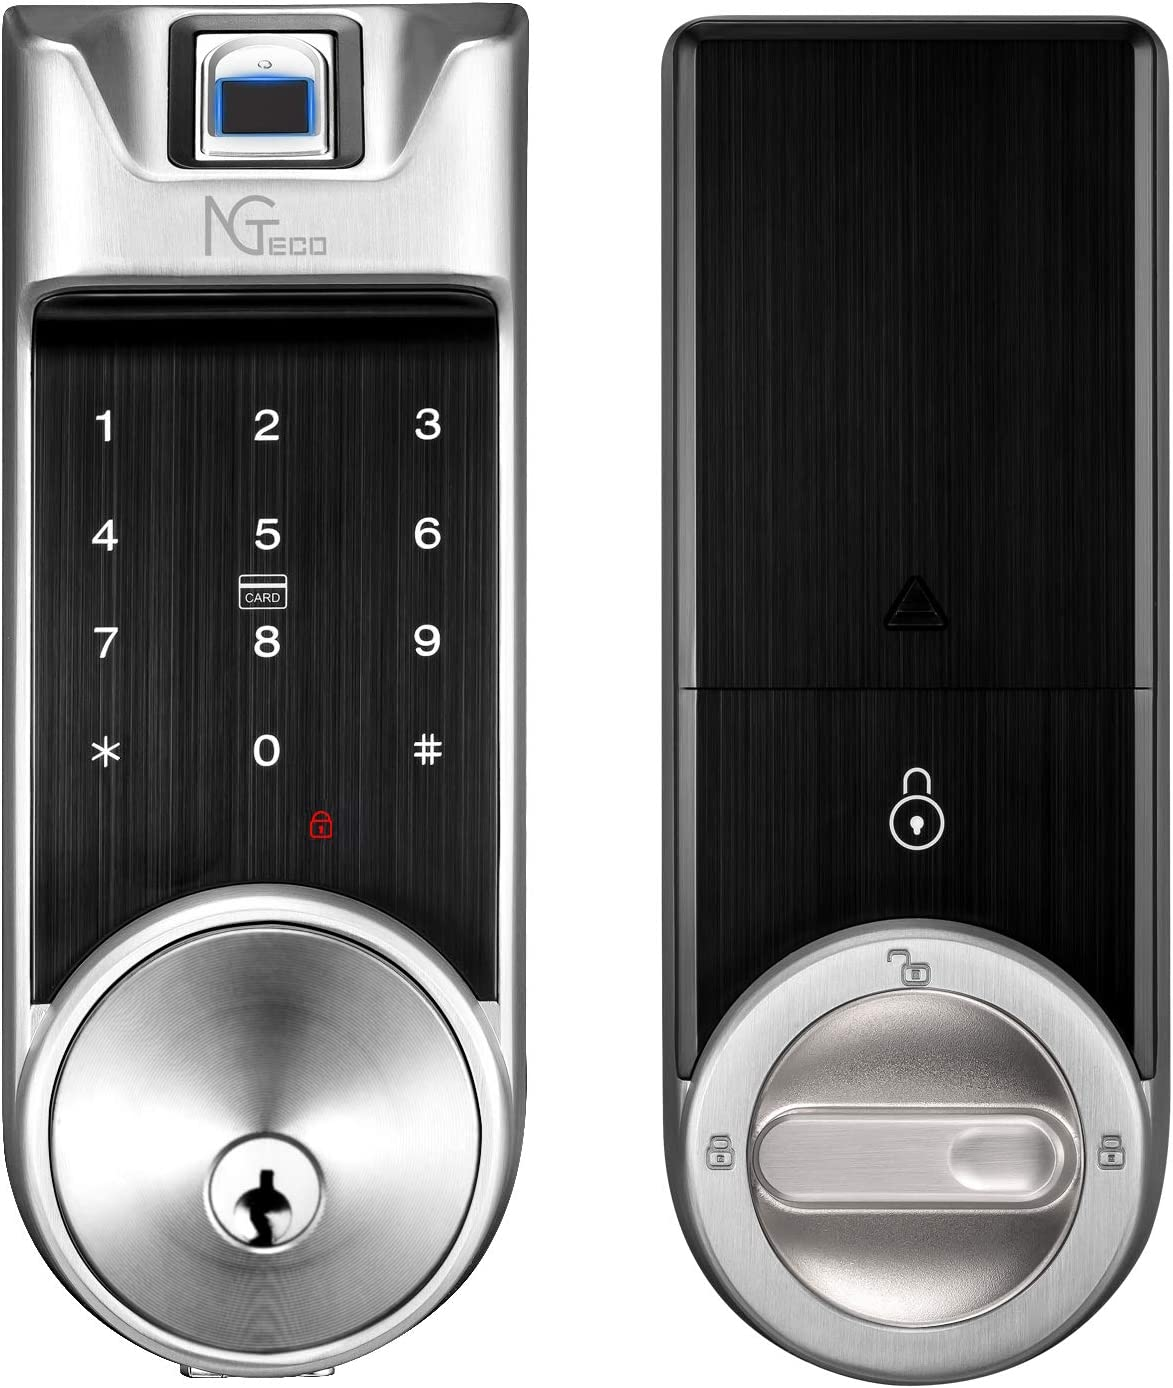 Popularity Smart Lock NGTeco Bluetooth Front Electronic Deadbolt for Max 87% OFF